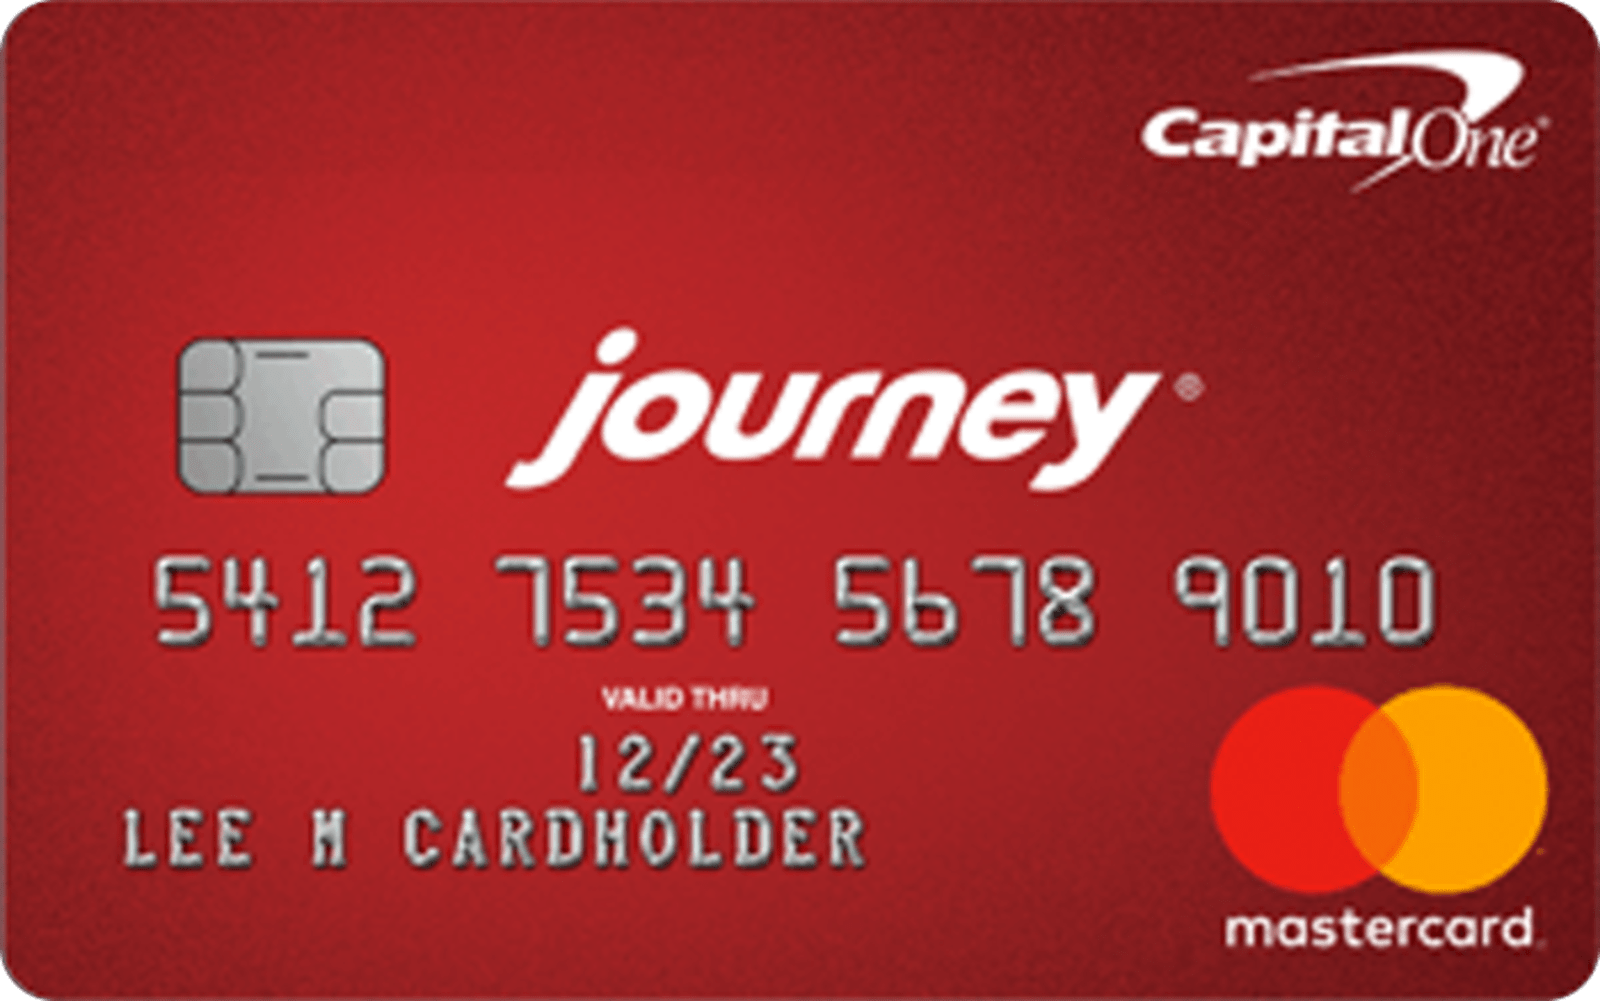 Journey® Student Rewards from Capital One®: Flat Rate Cash